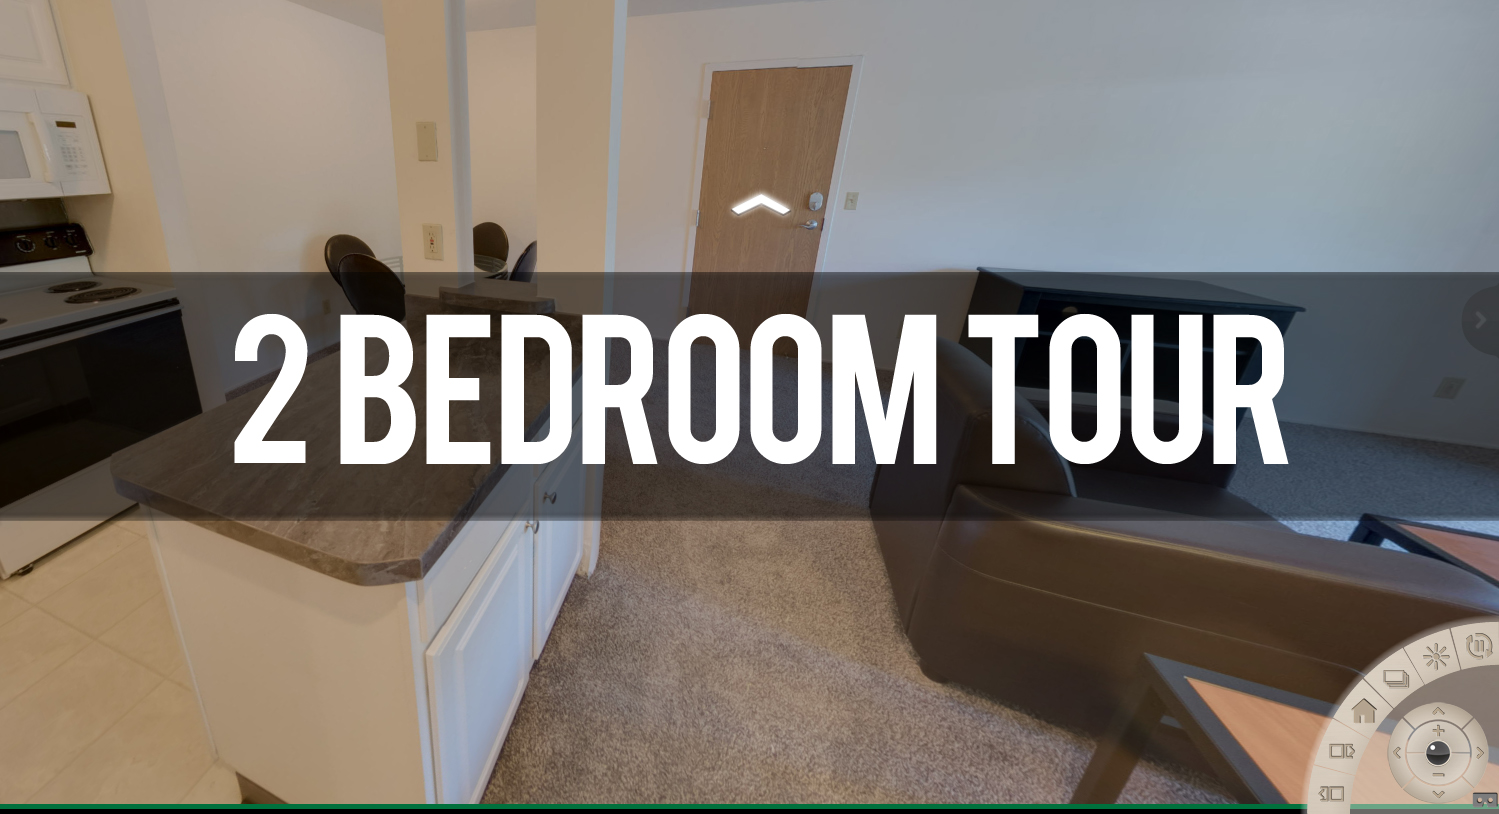 Take a Virtual Tour of 2 Bedroom at Delta Arms